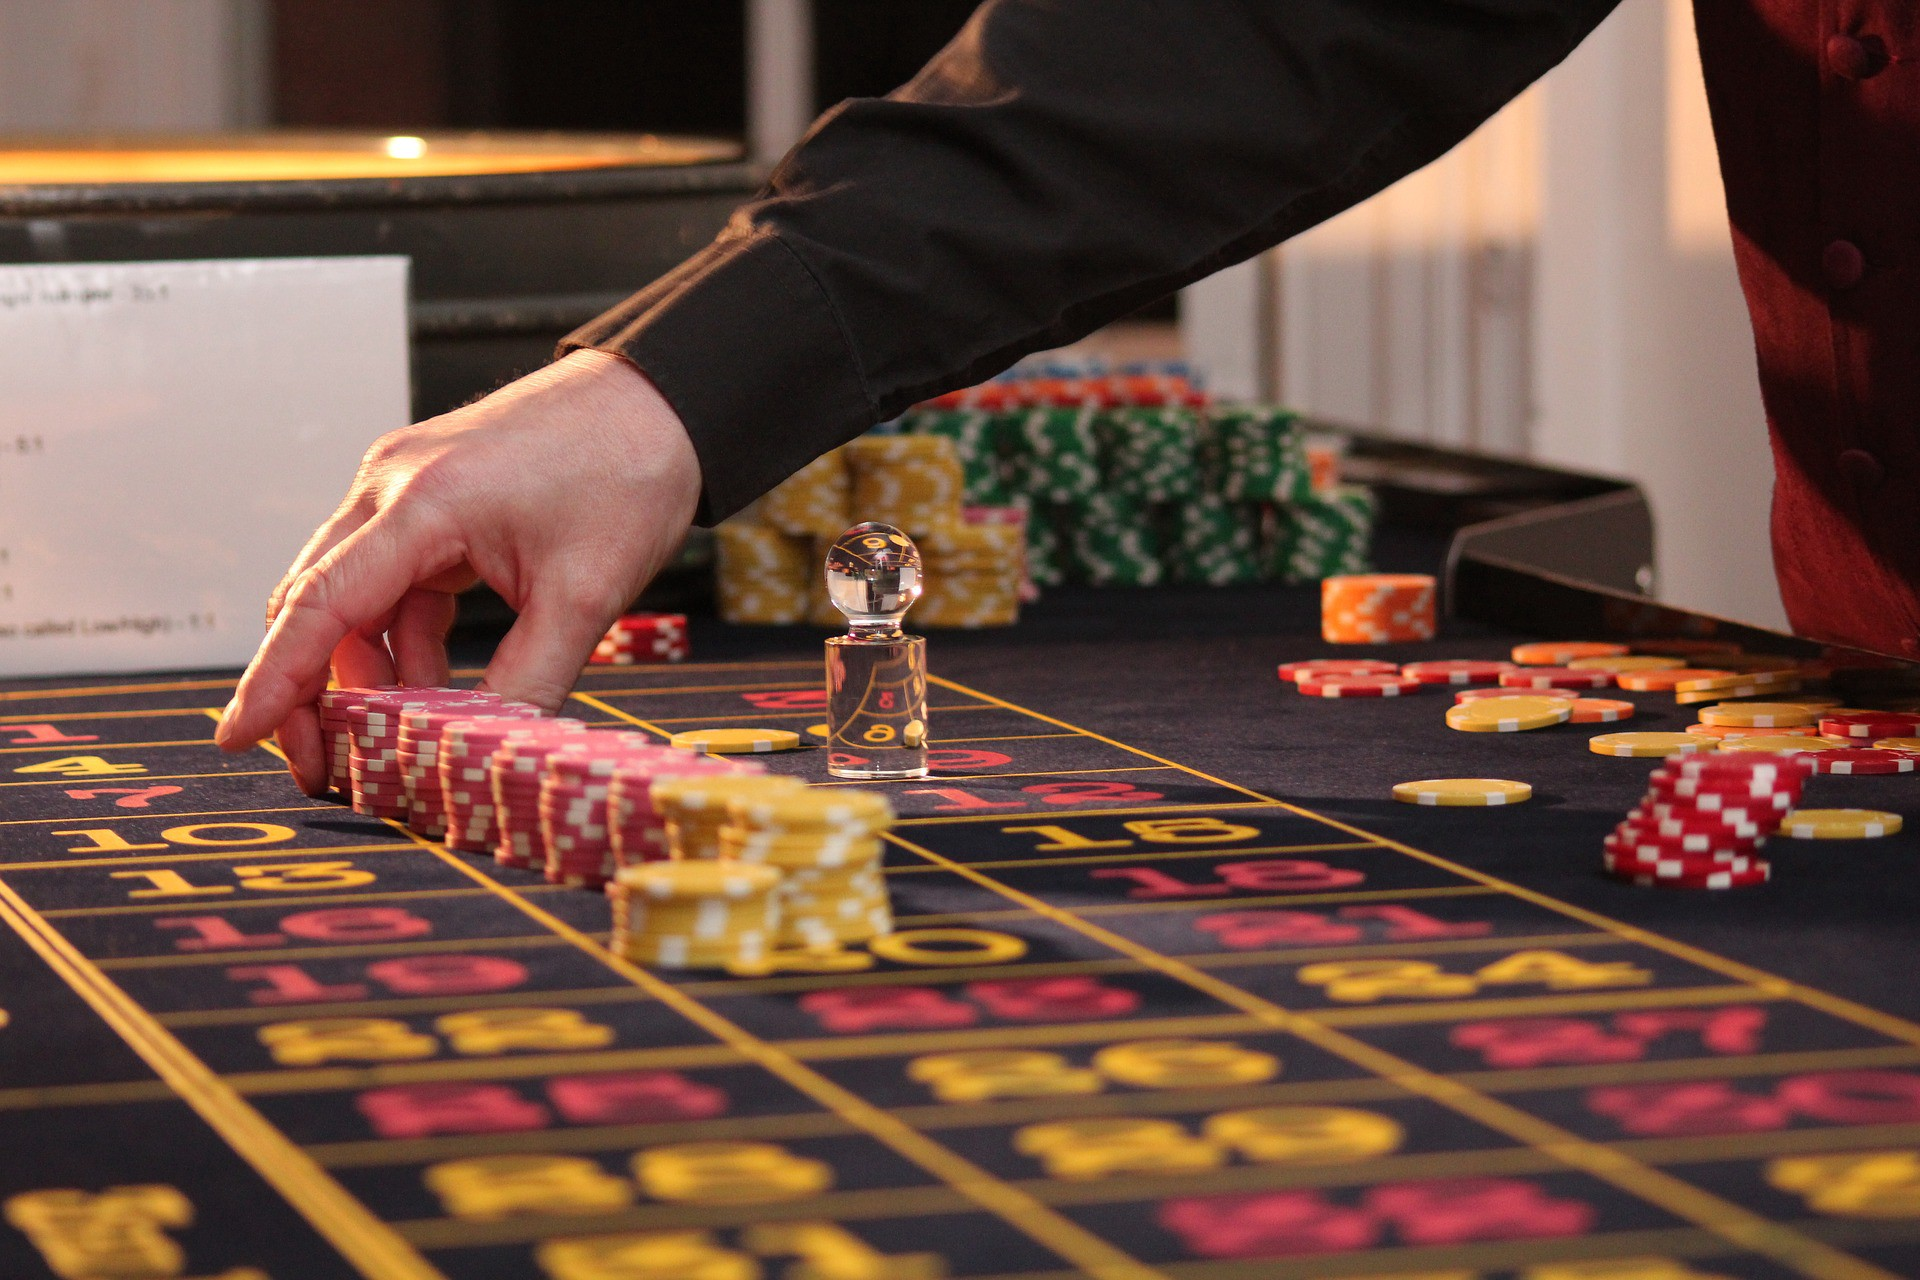 Is Online Poker Spoiling Today's Young People?